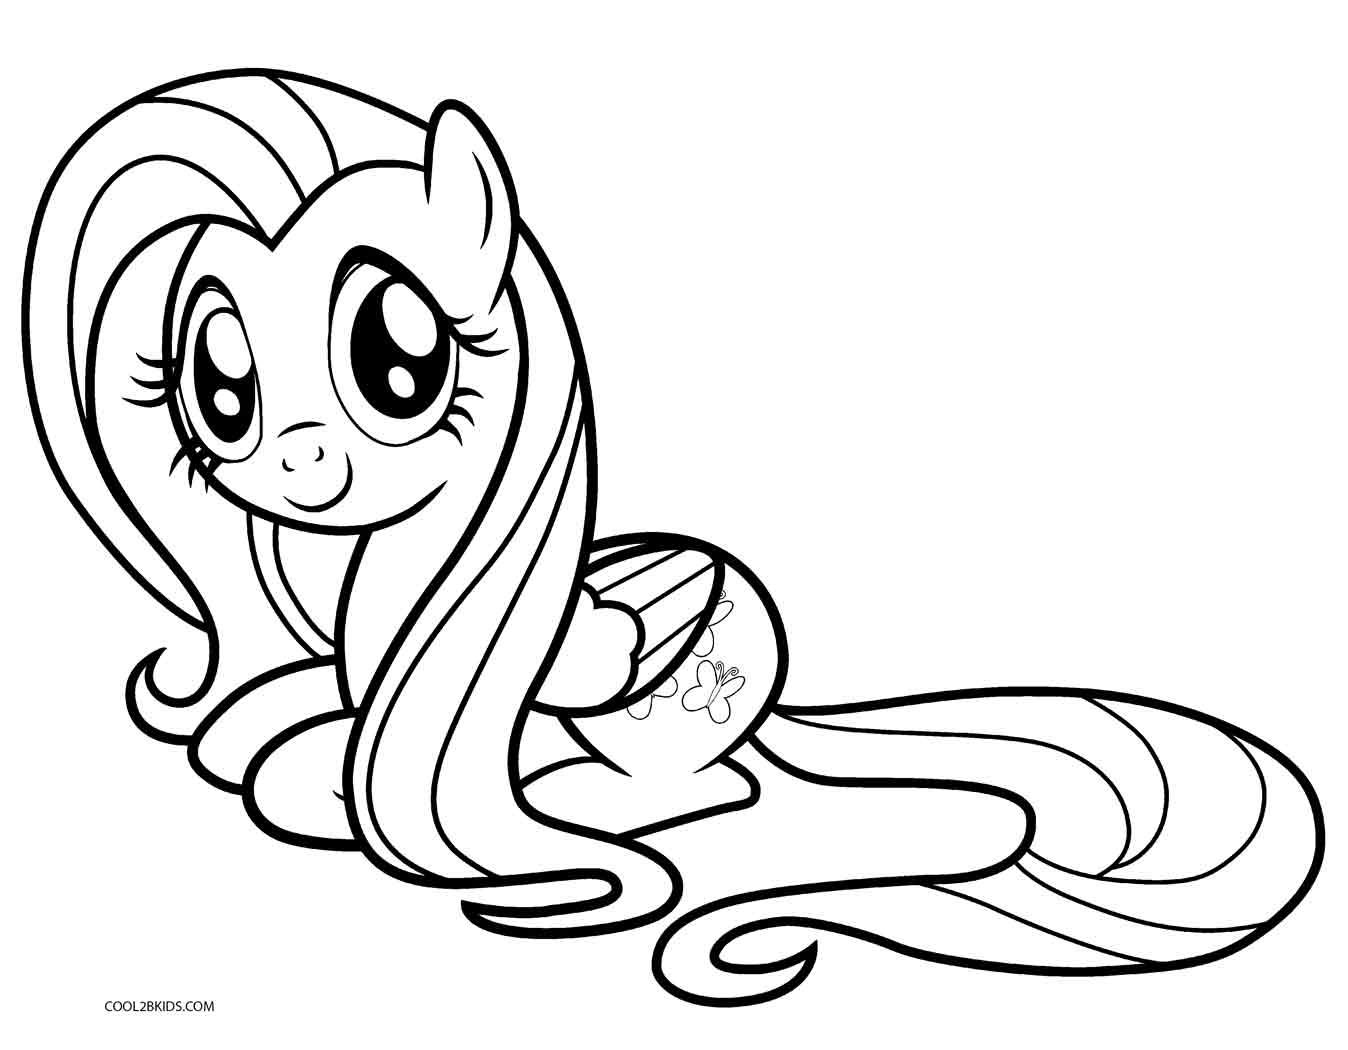 mlp printables baby pony coloring pages at getcoloringscom free printables mlp